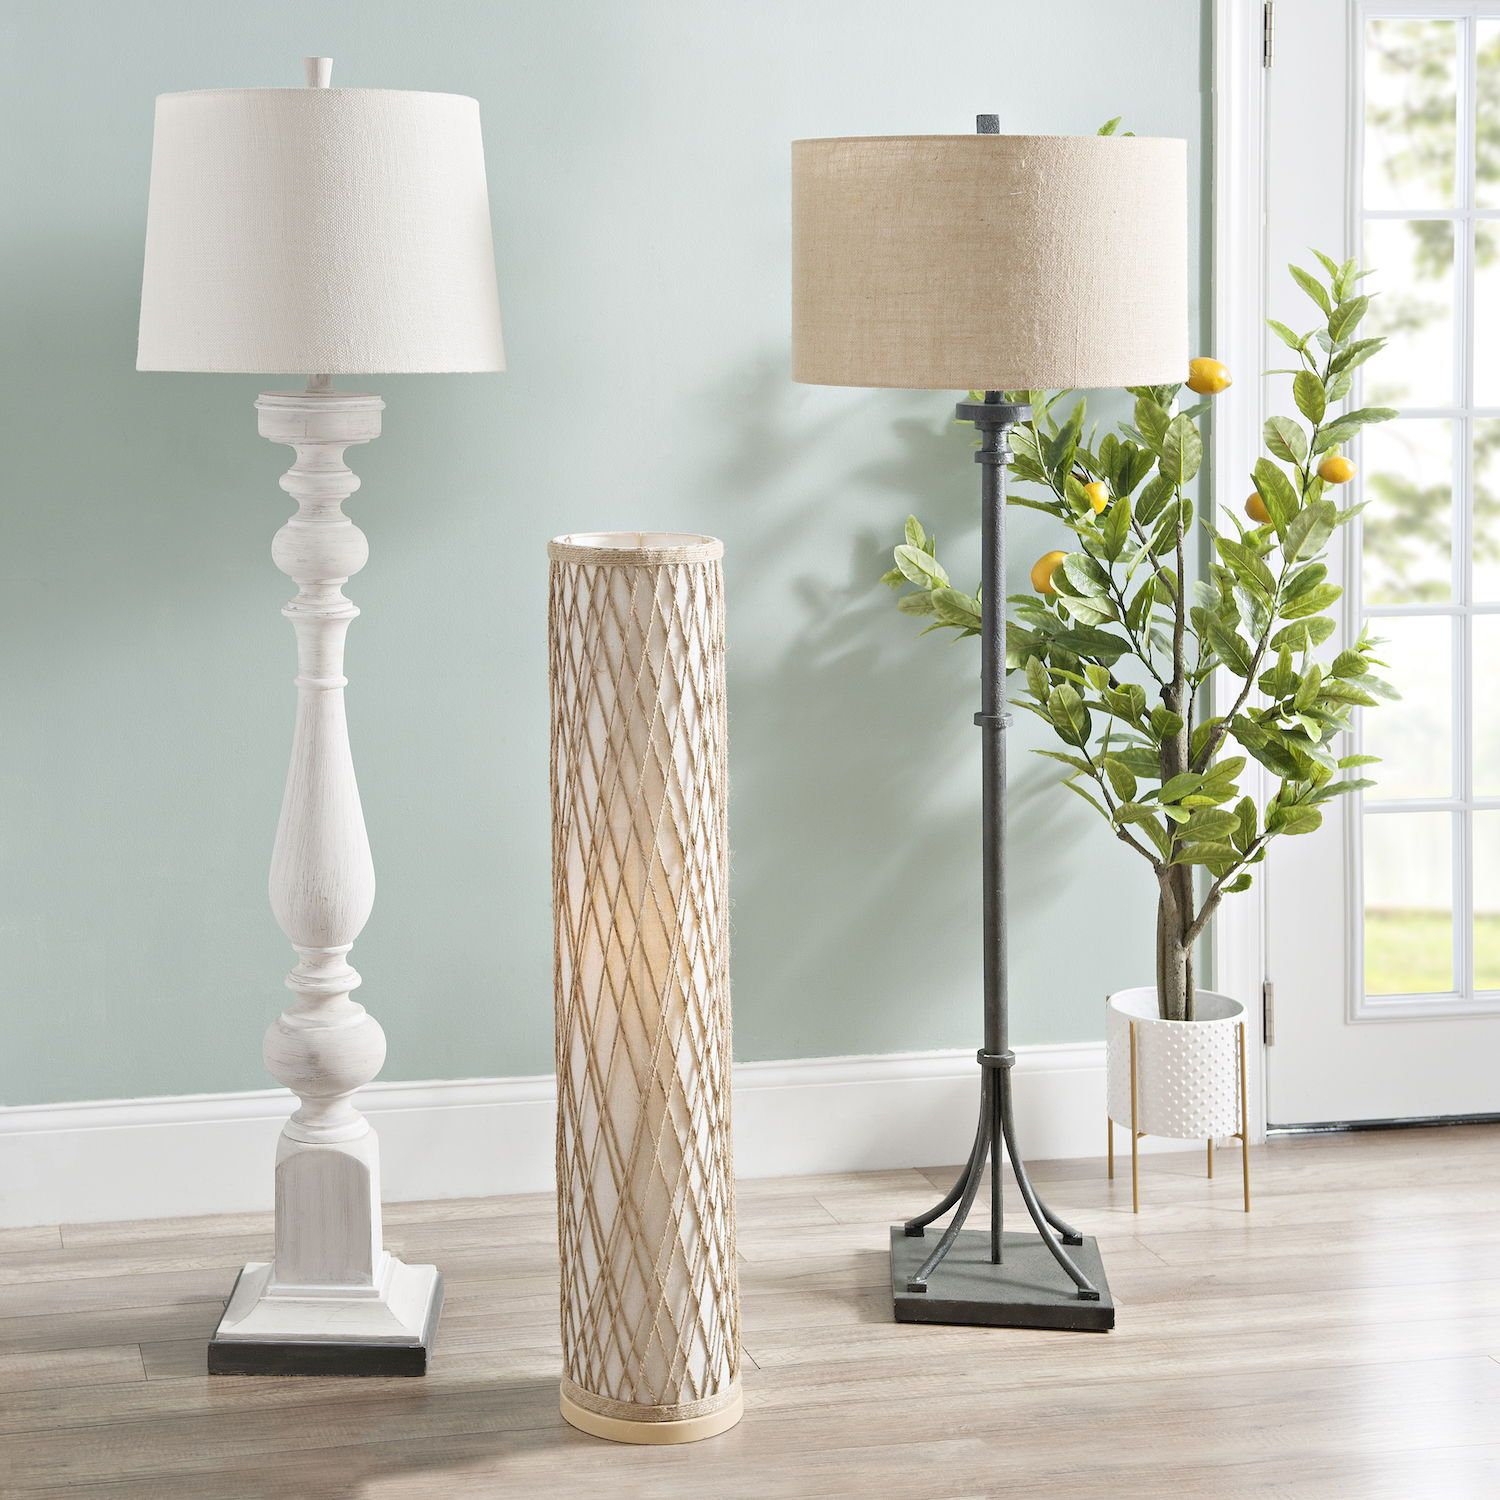 Beachy Vintage Rustic Or Modern We Ve Got The Floor Lamp You Need Scroll Through Our Coastal Living Rooms Coastal Decorating Living Room Coastal Interiors